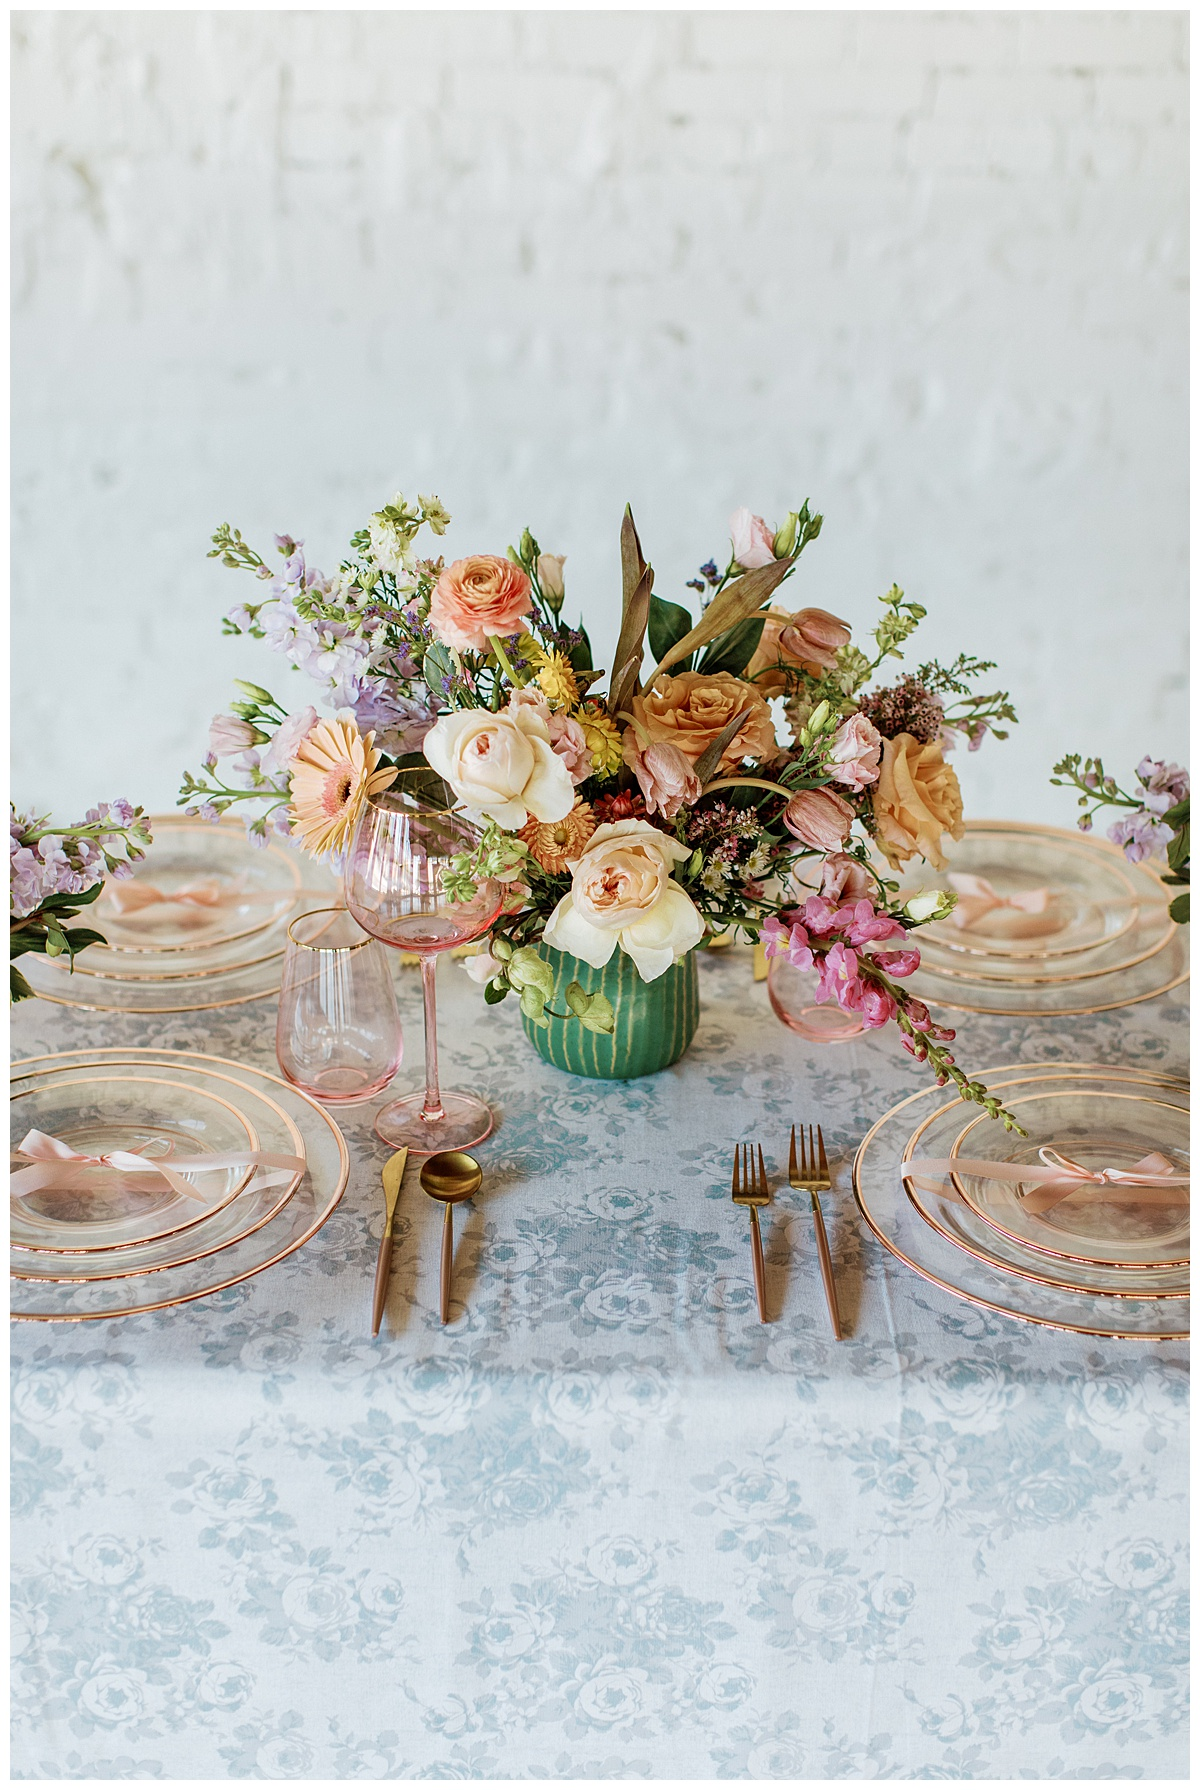 spring Easter tablescape with colorful flowers and pink dinnerware